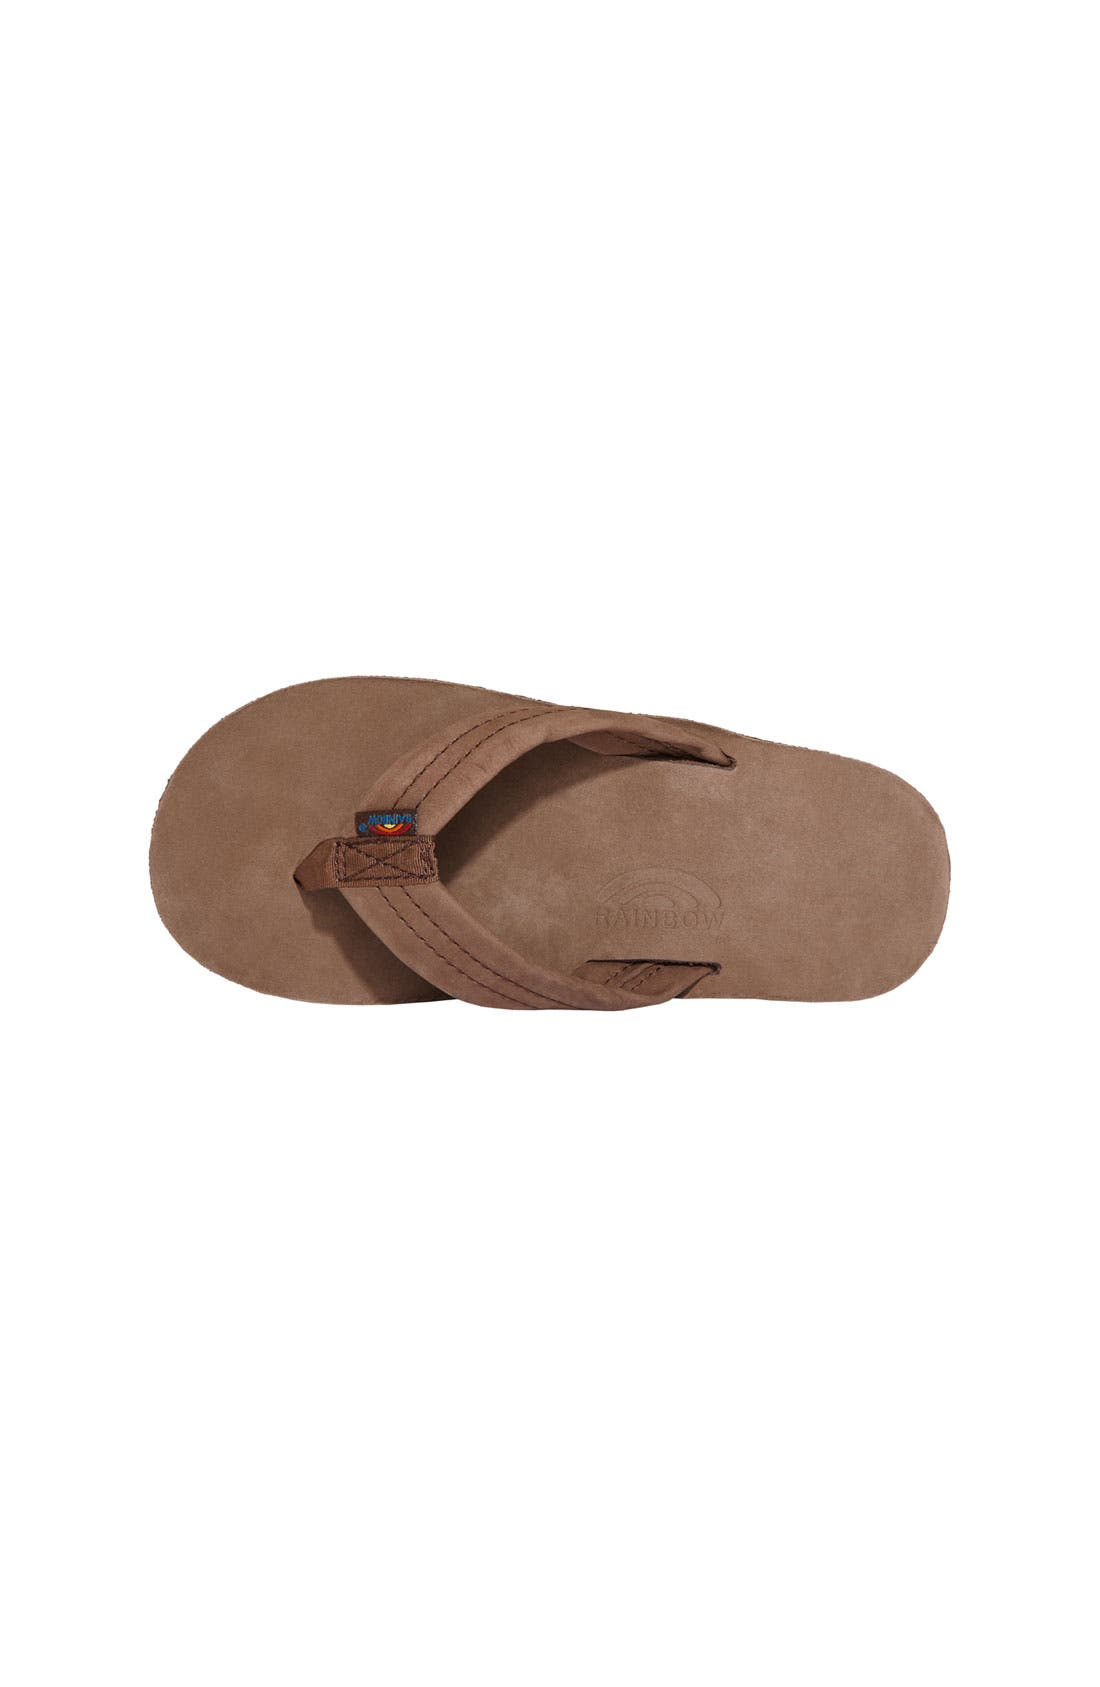 Leather Sandal,                             Alternate thumbnail 10, color,                             EXPRESSO